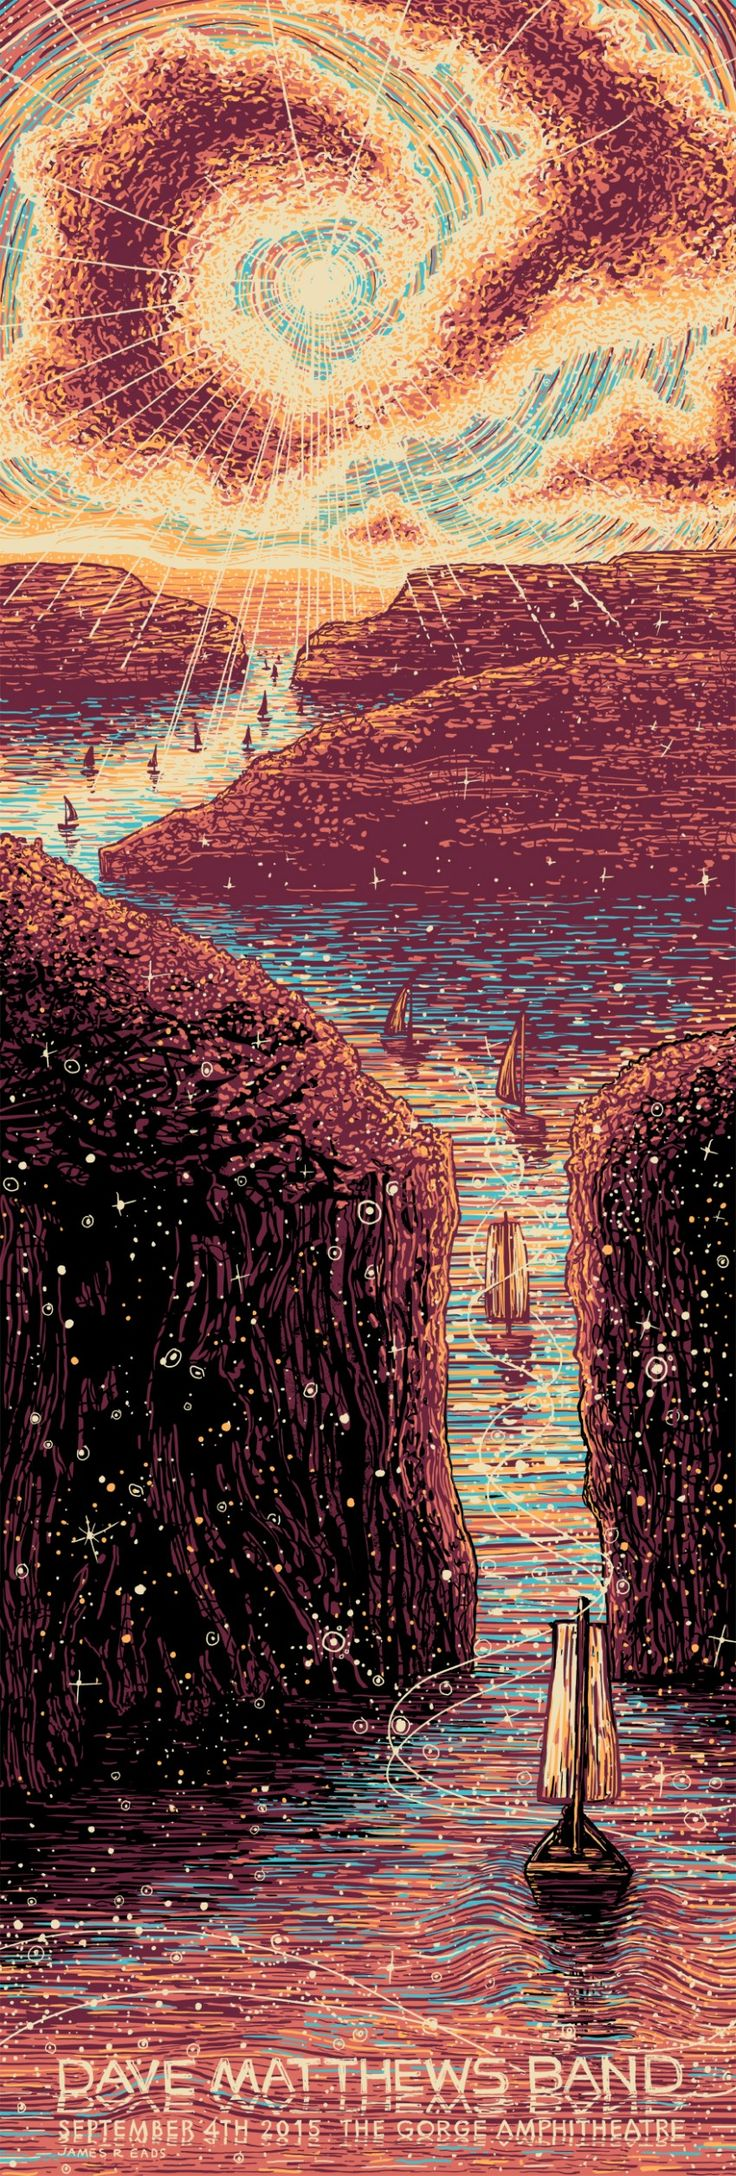 Dave Matthews Band - James R Eads - 2015 ----